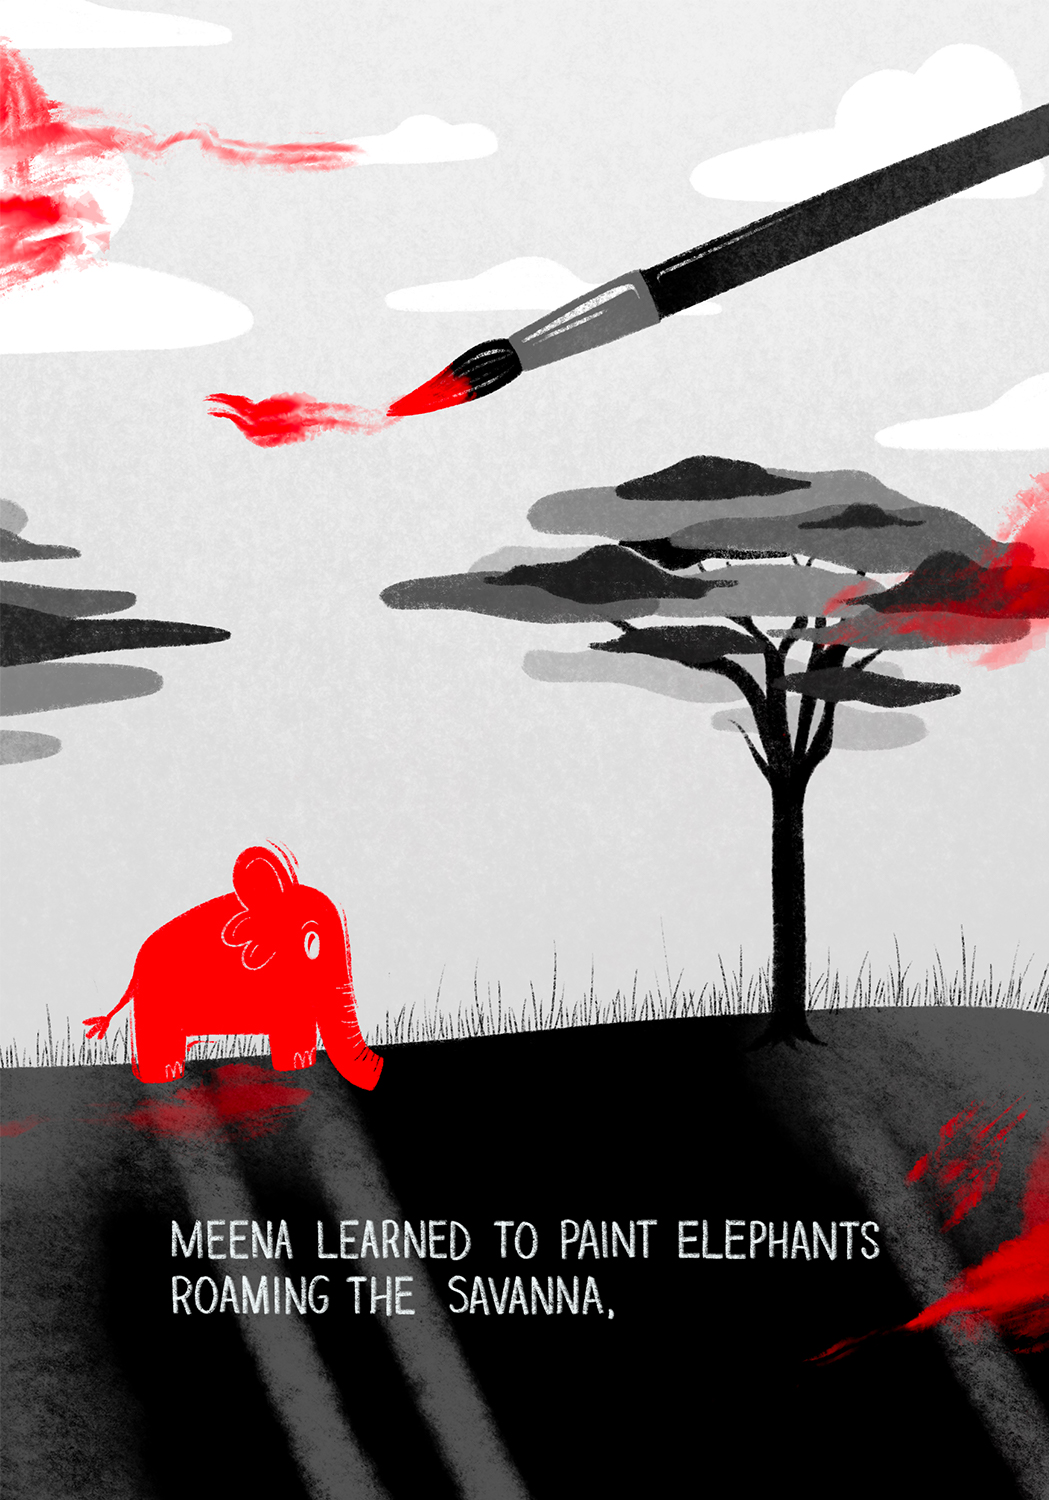 Small elephant painted red in open field beneath two trees. A paint brush from above smears red paint randomly over image.